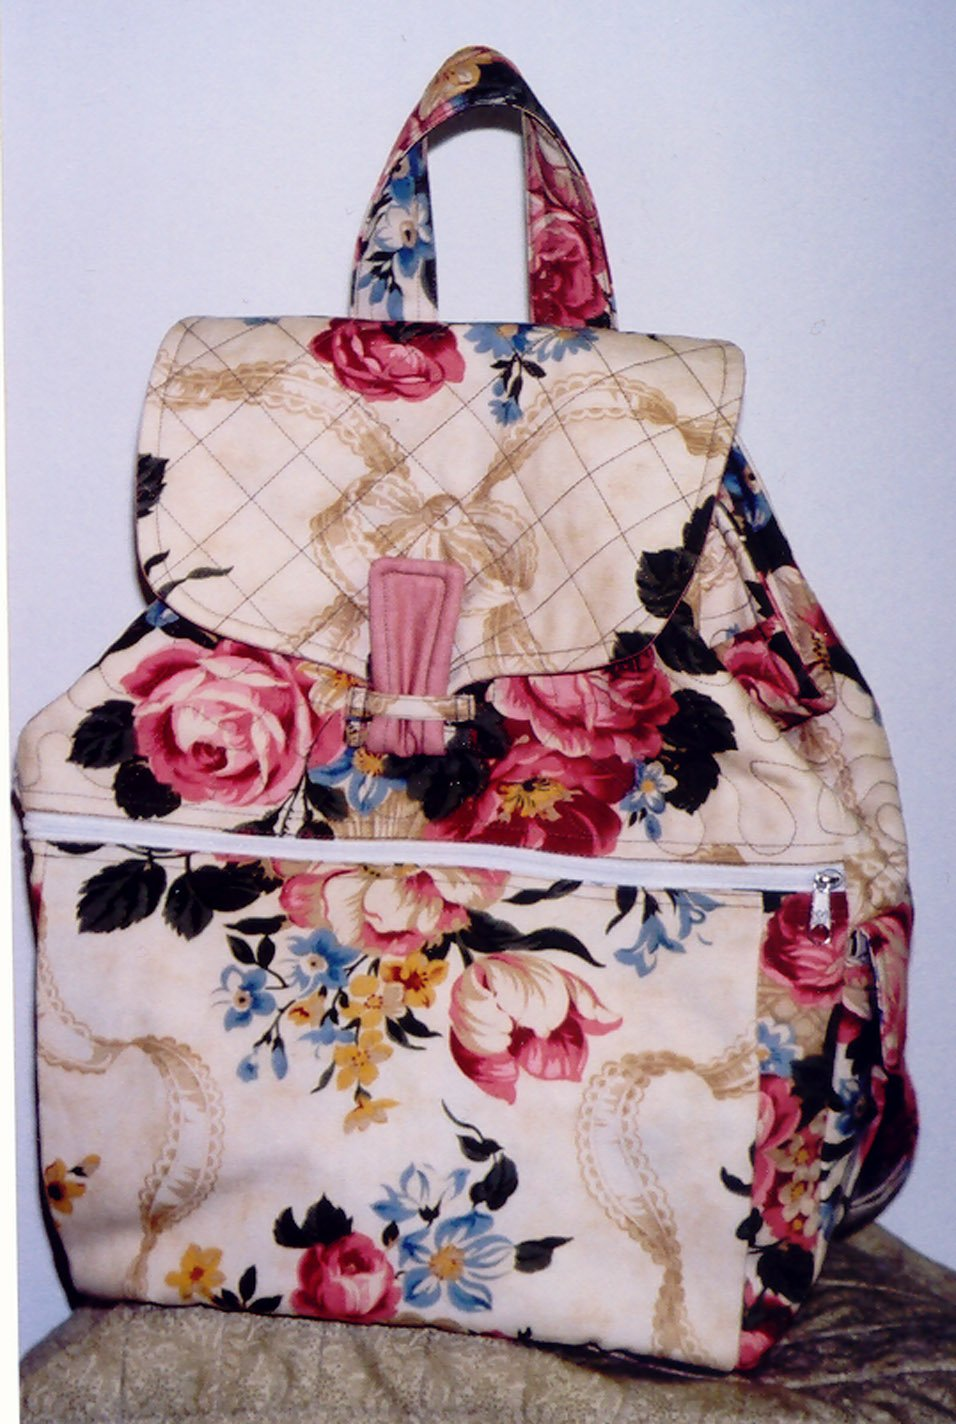 P3-119 Quilter's Backpack